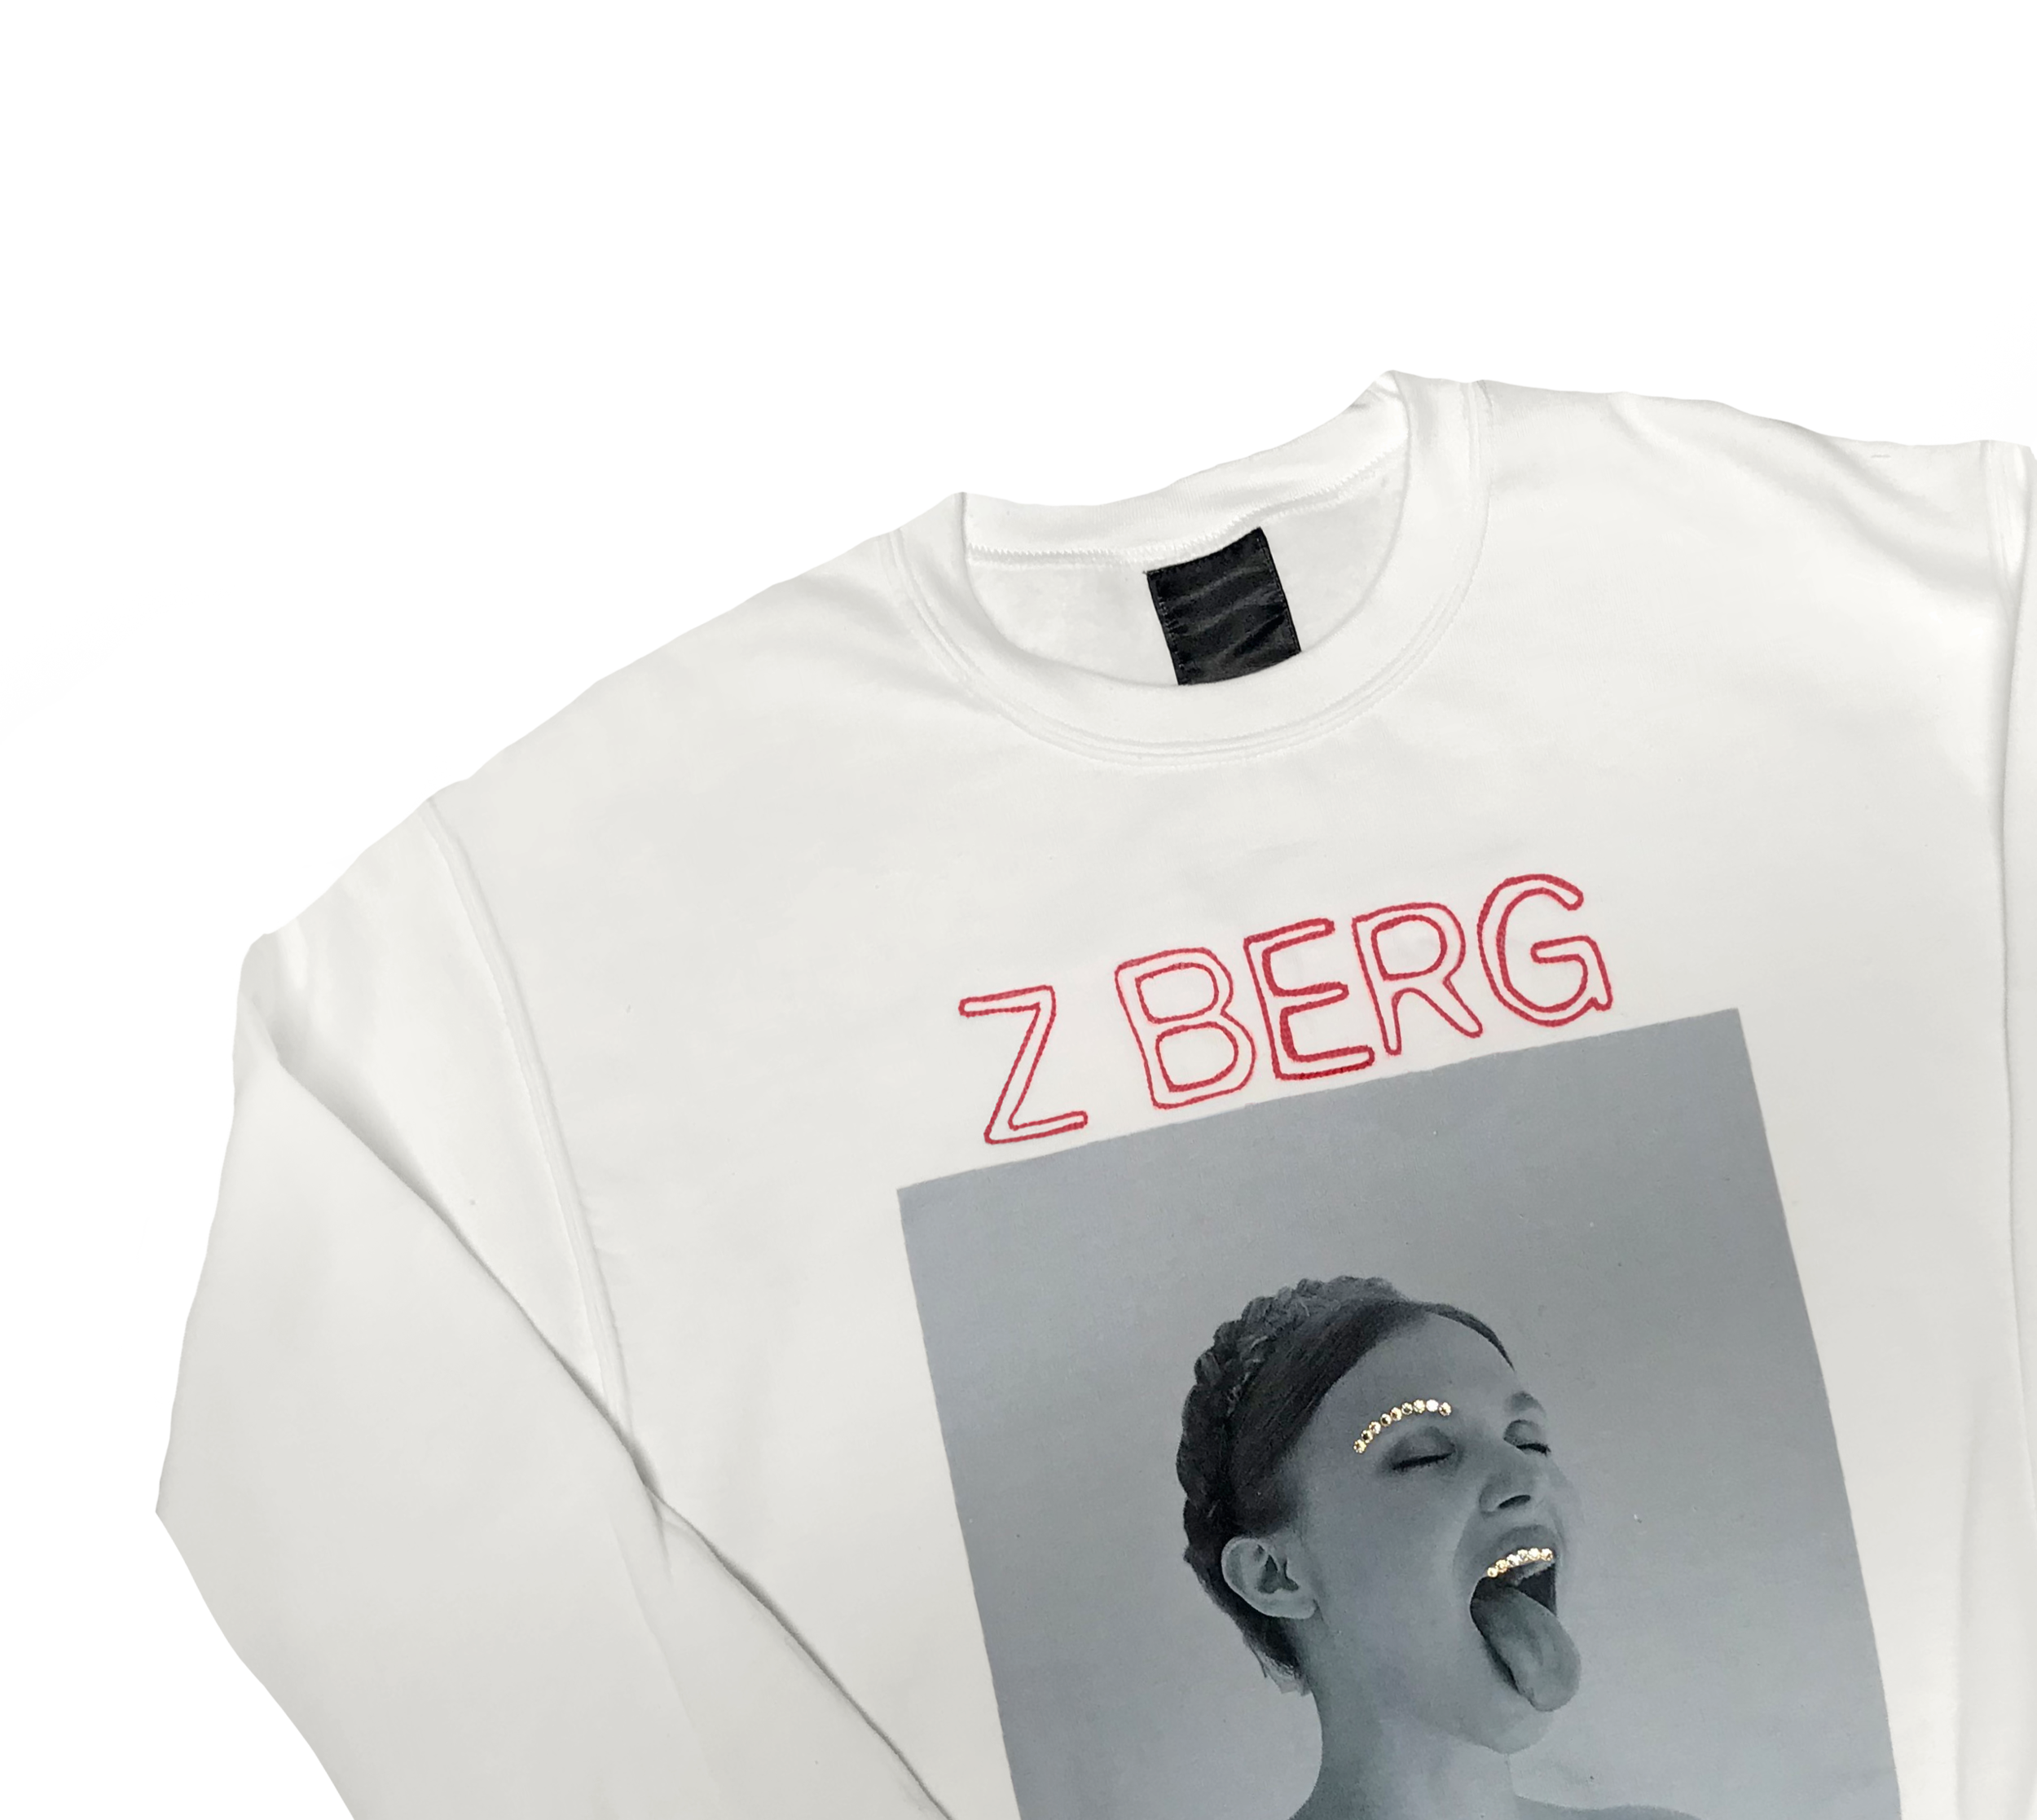 Z Berg Flat Ful Crew Rotate Zoom 2.png